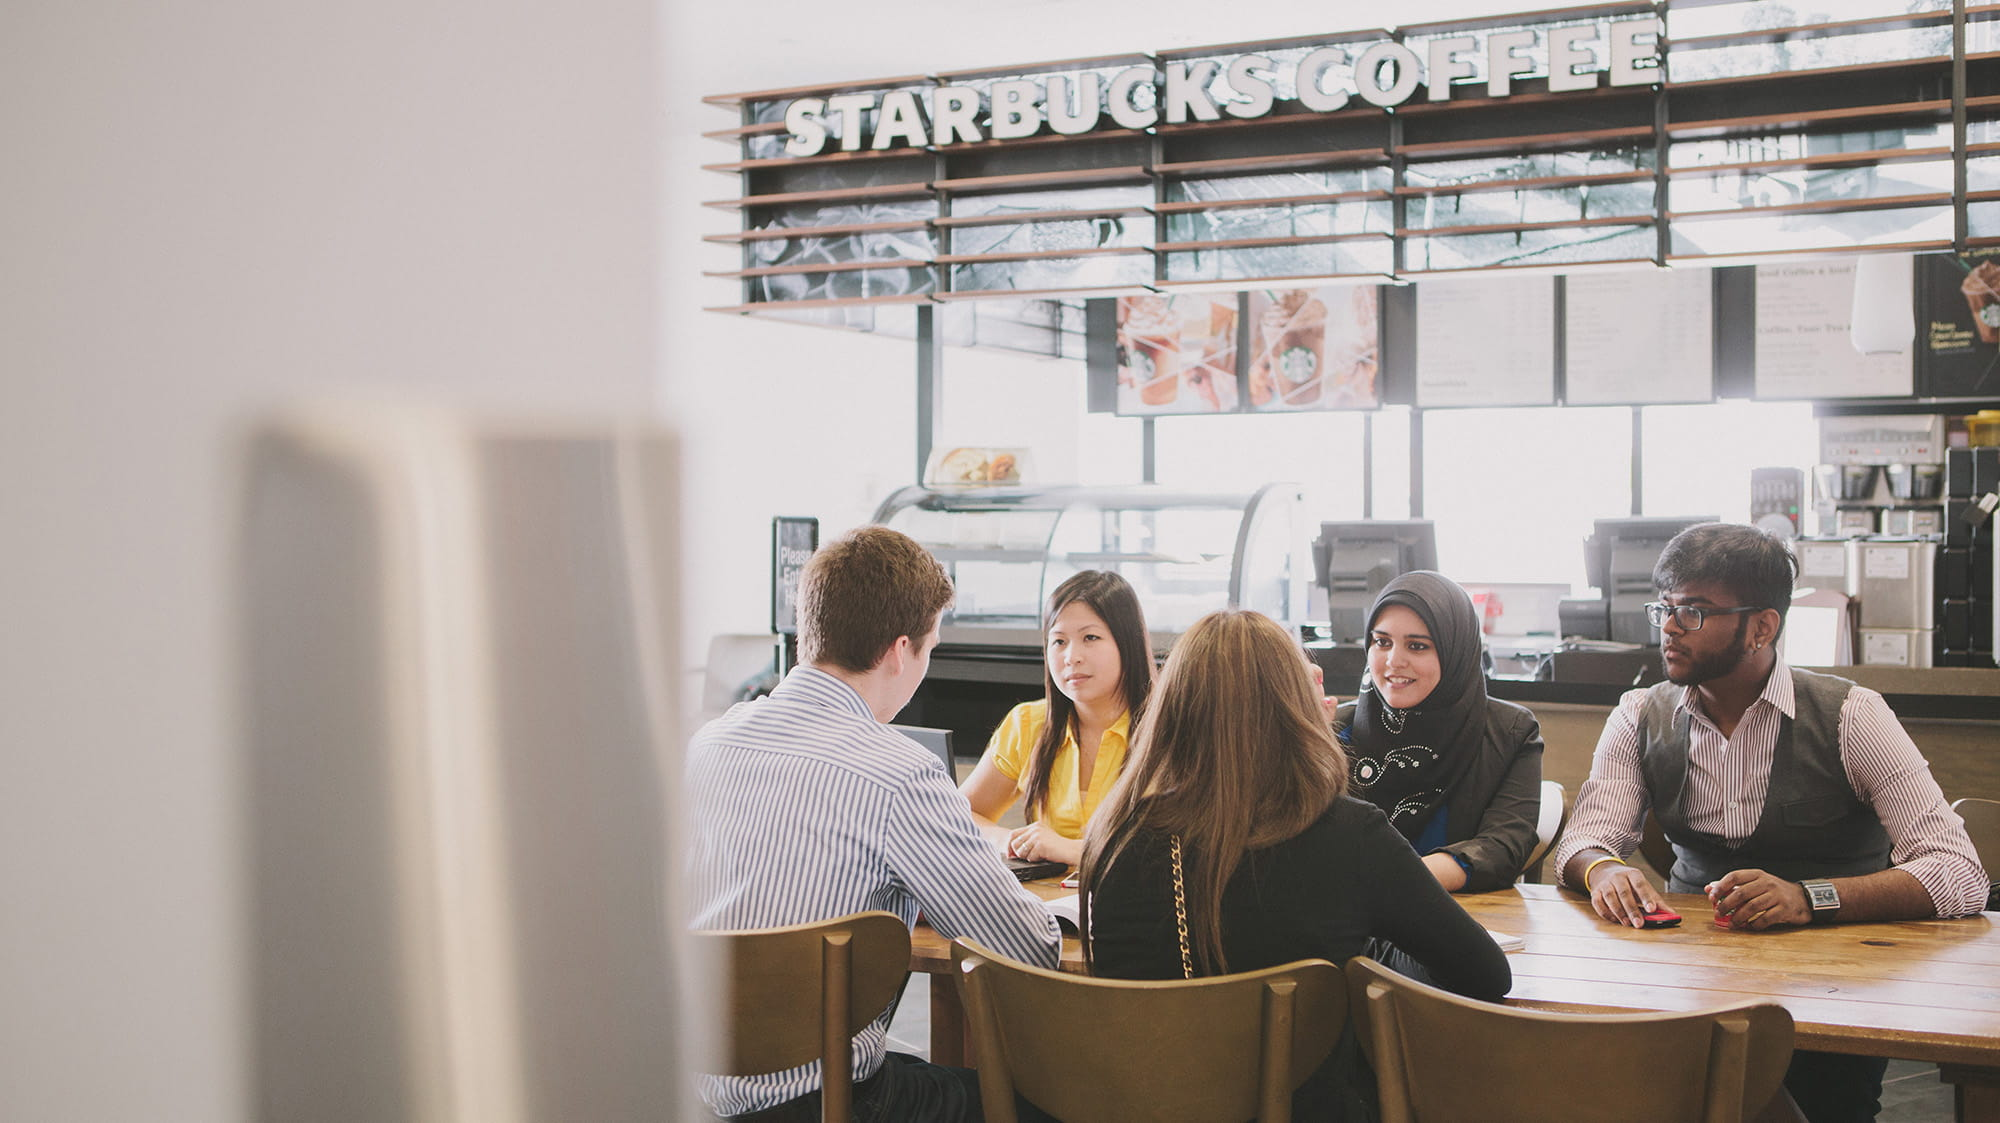 A group of students sitting at a table at Starbucks.